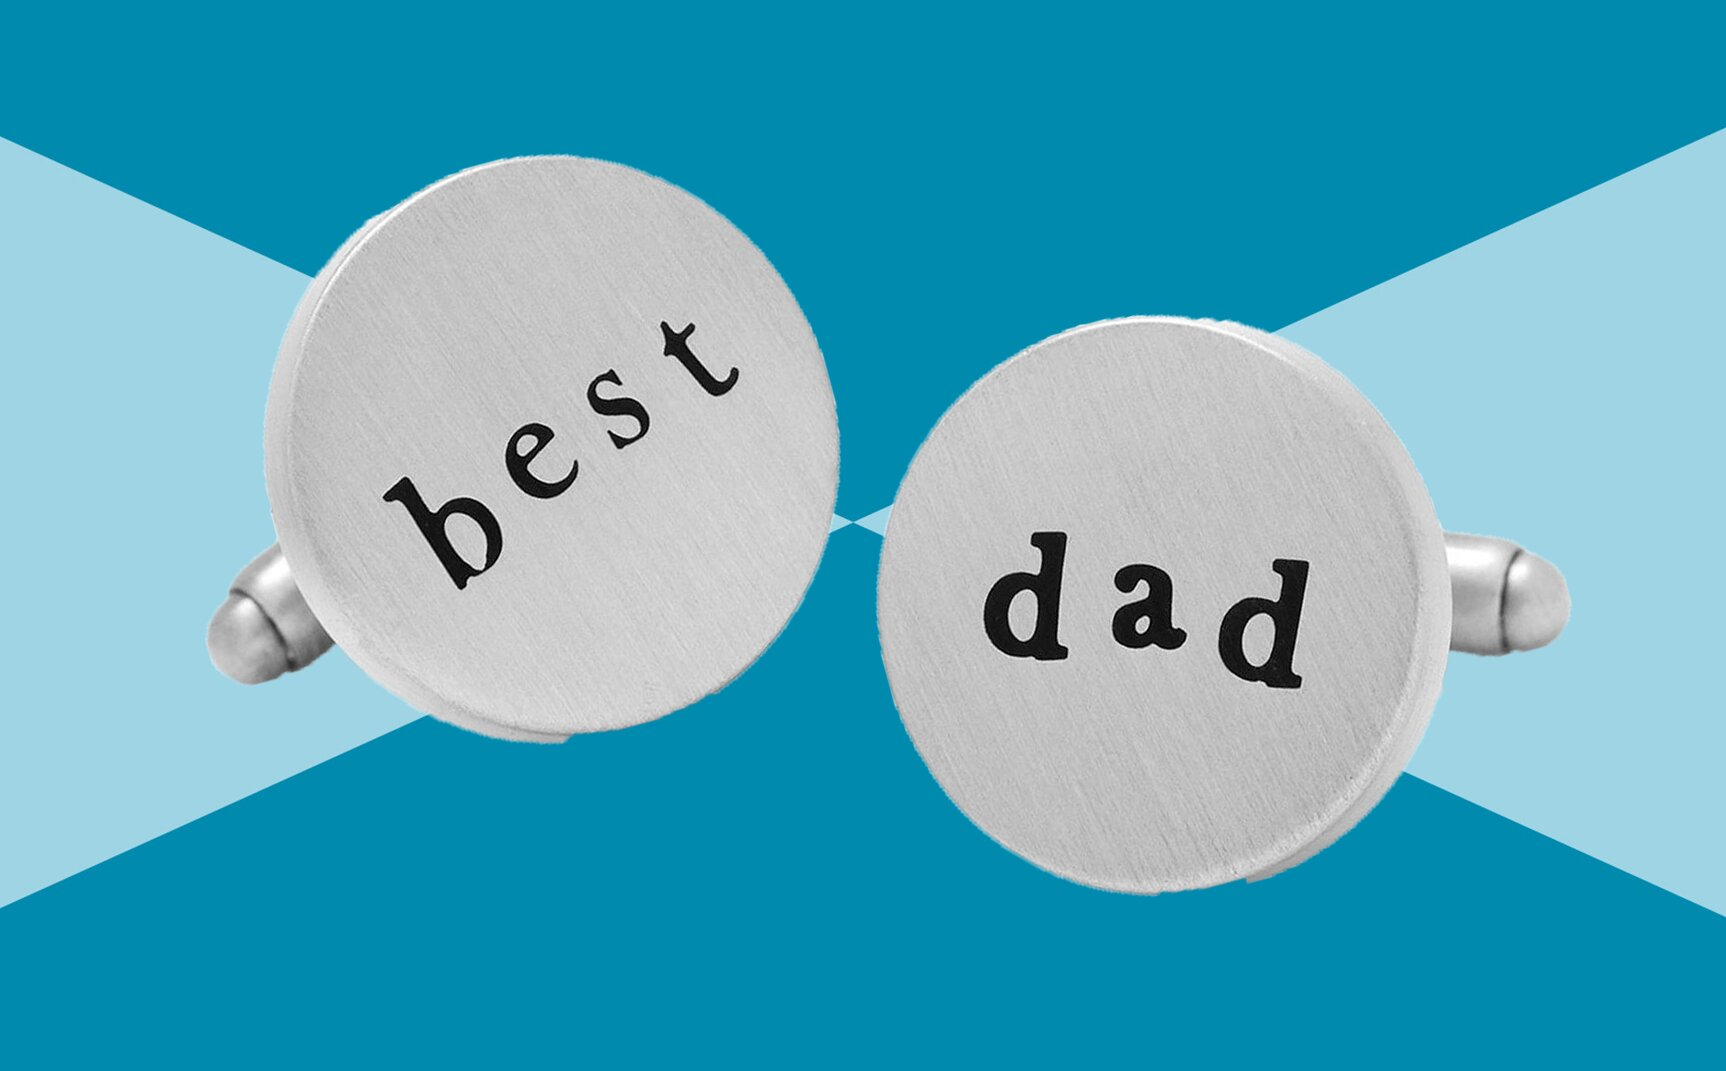 Christmas Gift For Dad.The Best Christmas Gifts For Dad In 2019